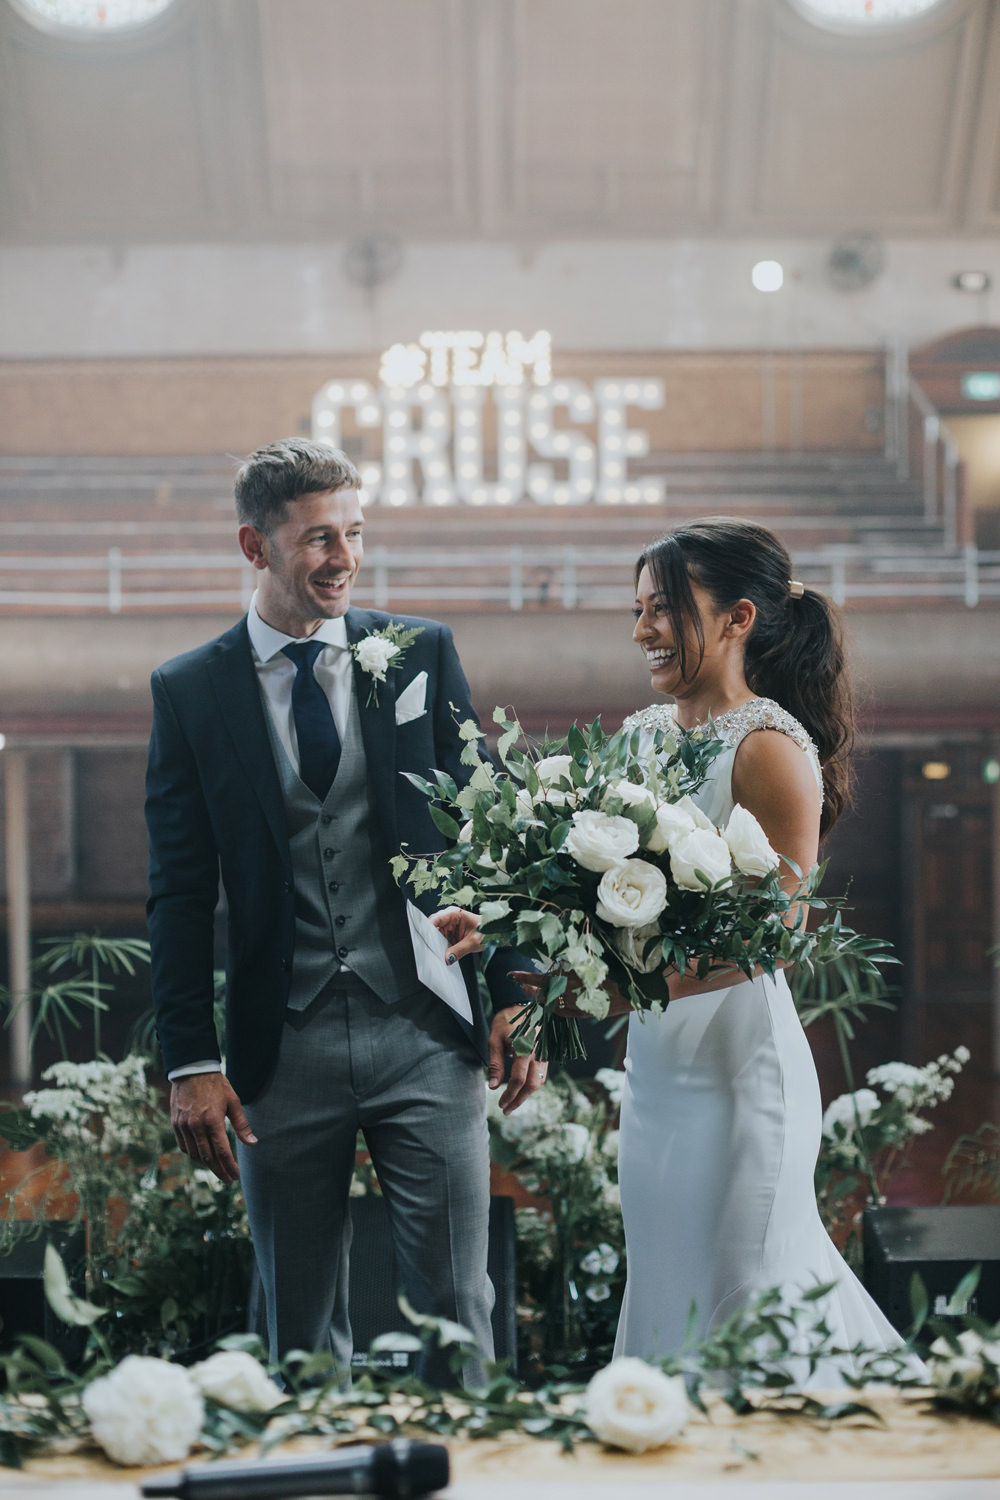 Pronovias Dress Gown Fit and Flare Embellished Sparkle Long Train Mismatched Suit Groom White Flowers Floral Greenery Bouquet Albert Hall Manchester Wedding Katie Dervin Photography